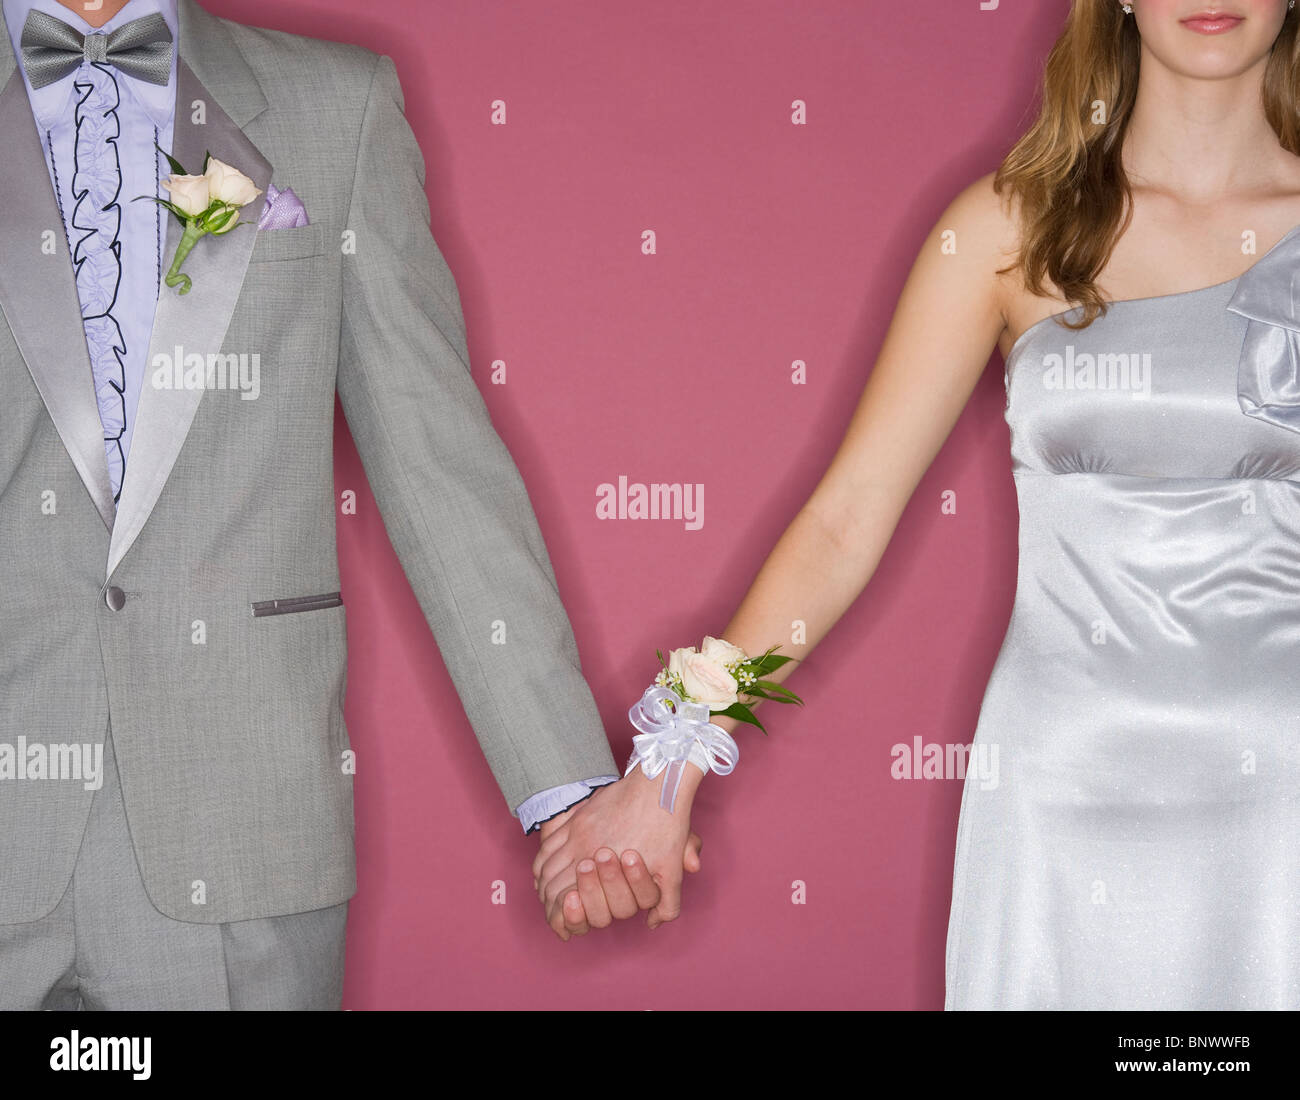 Prom Couples Imágenes De Stock & Prom Couples Fotos De Stock - Alamy